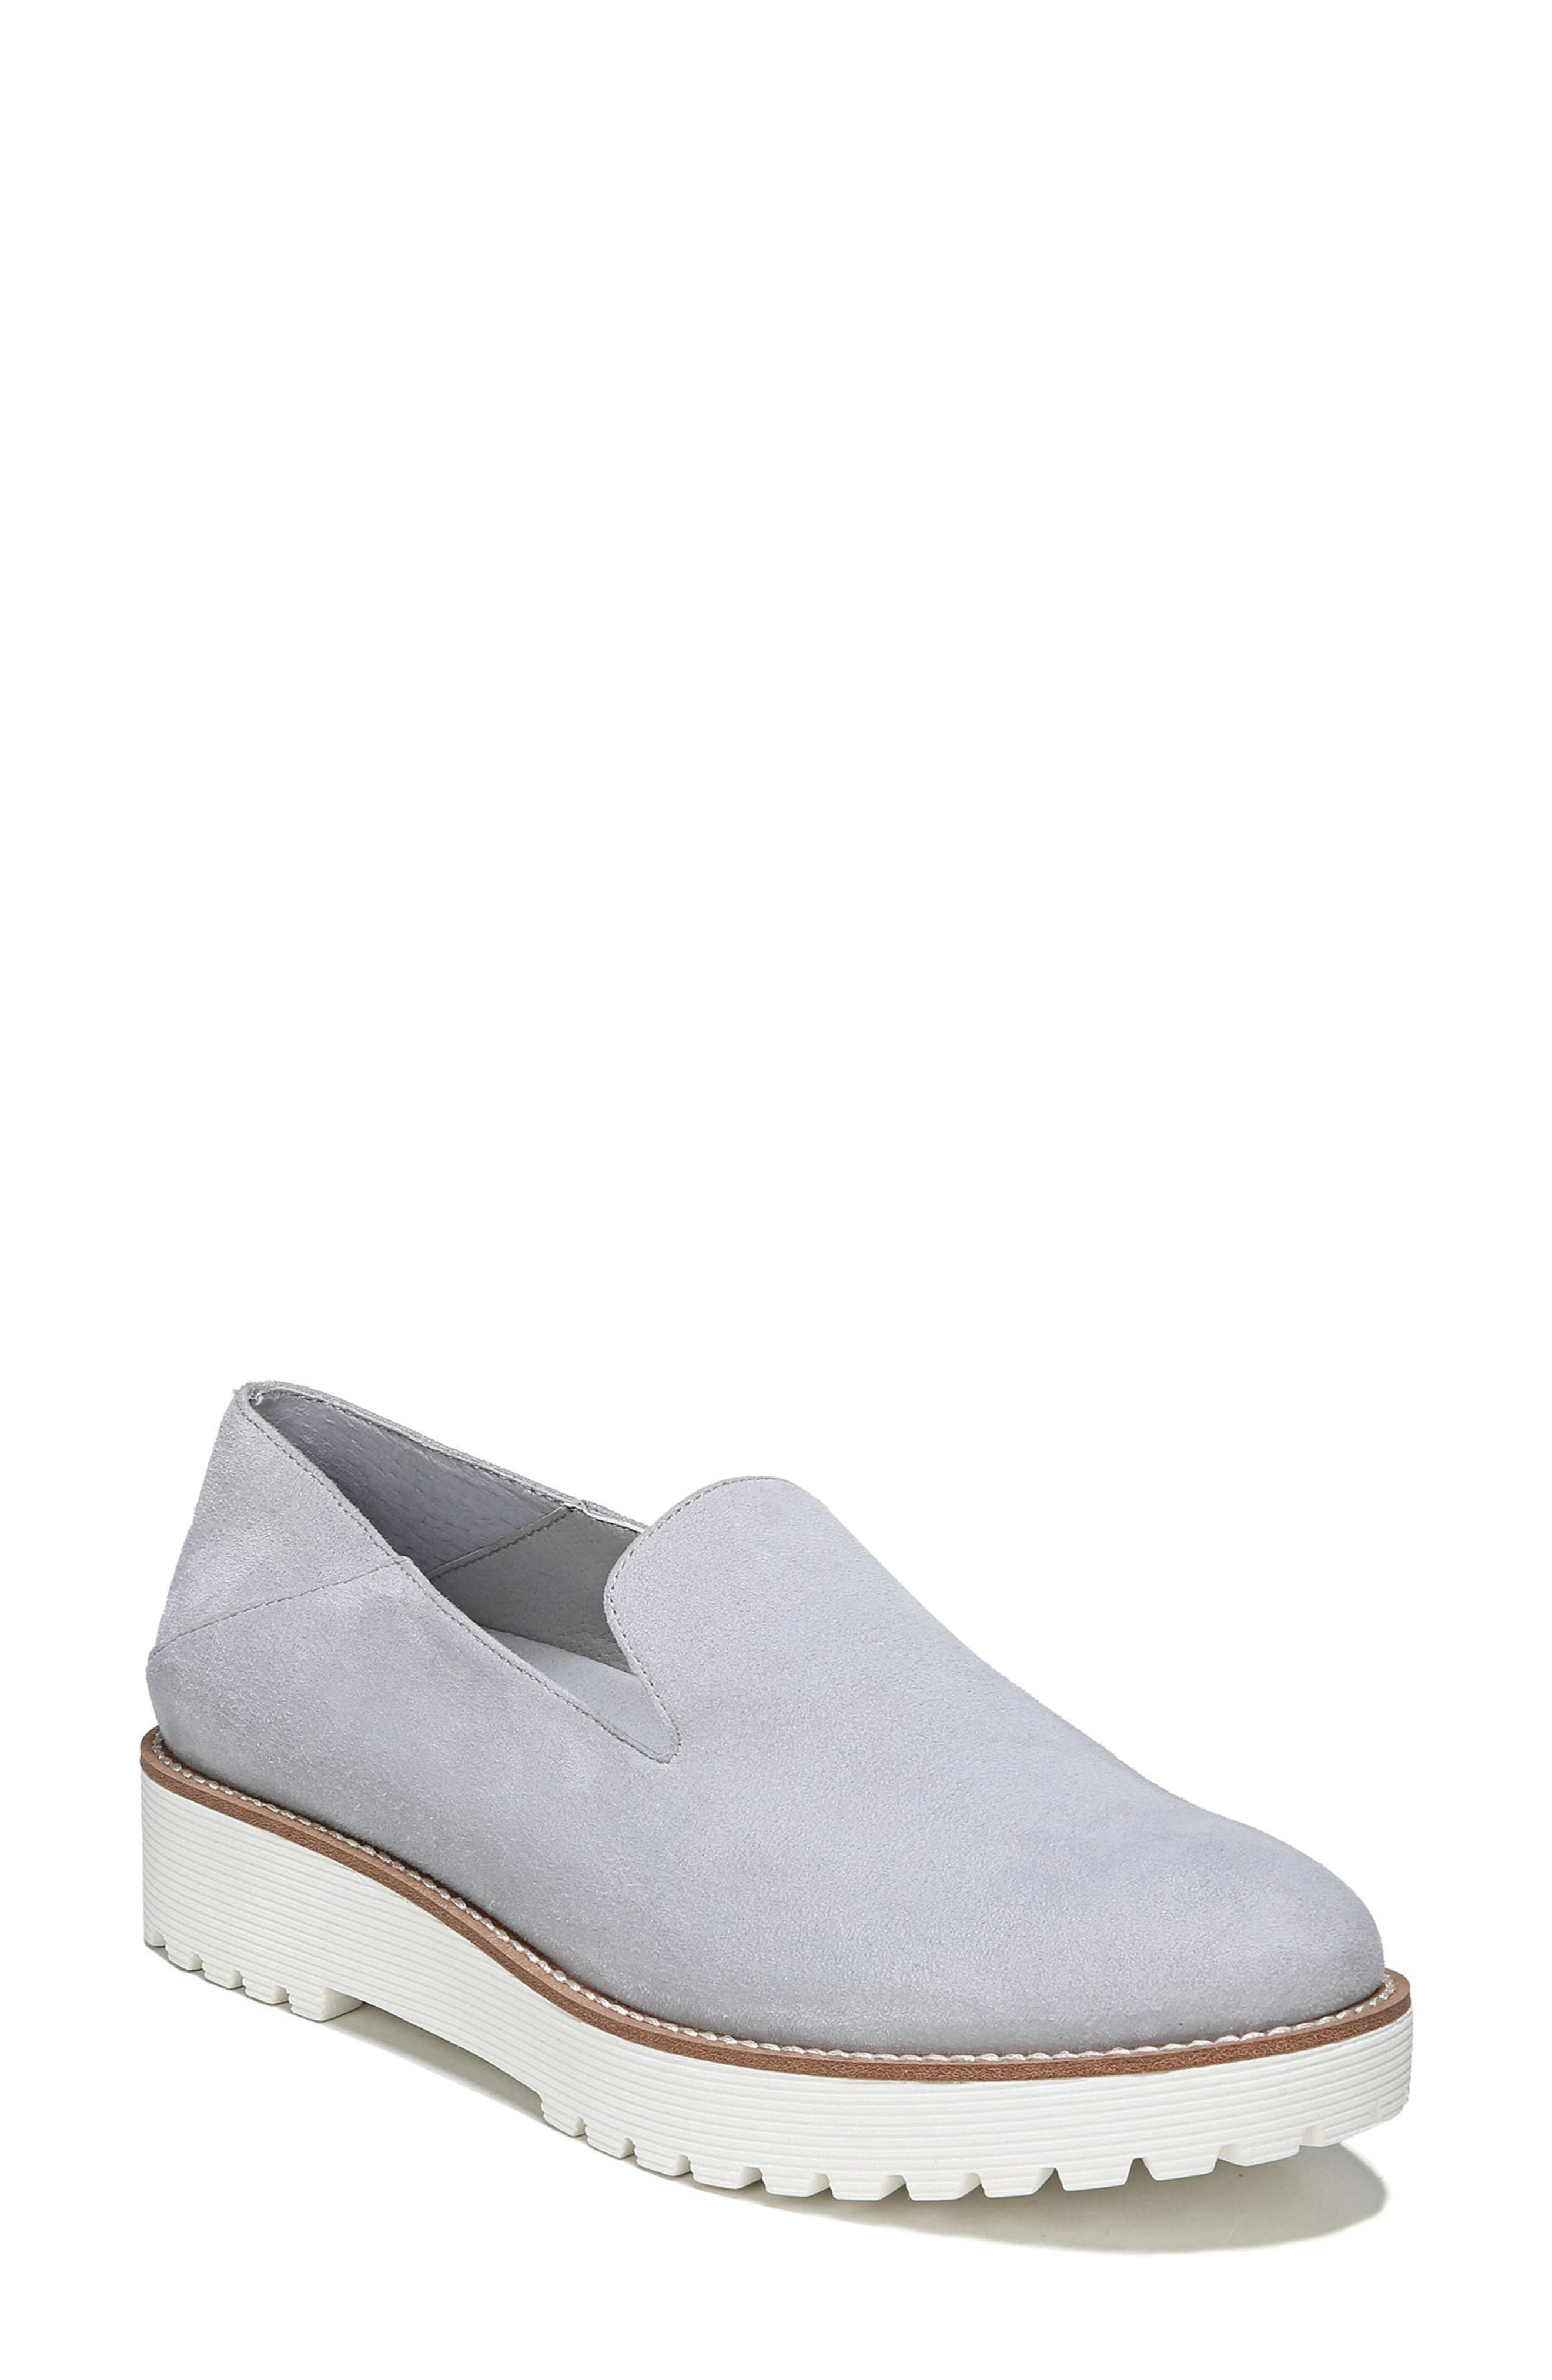 Jaxton Loafer,                             Main thumbnail 1, color,                             Artic Grey Suede